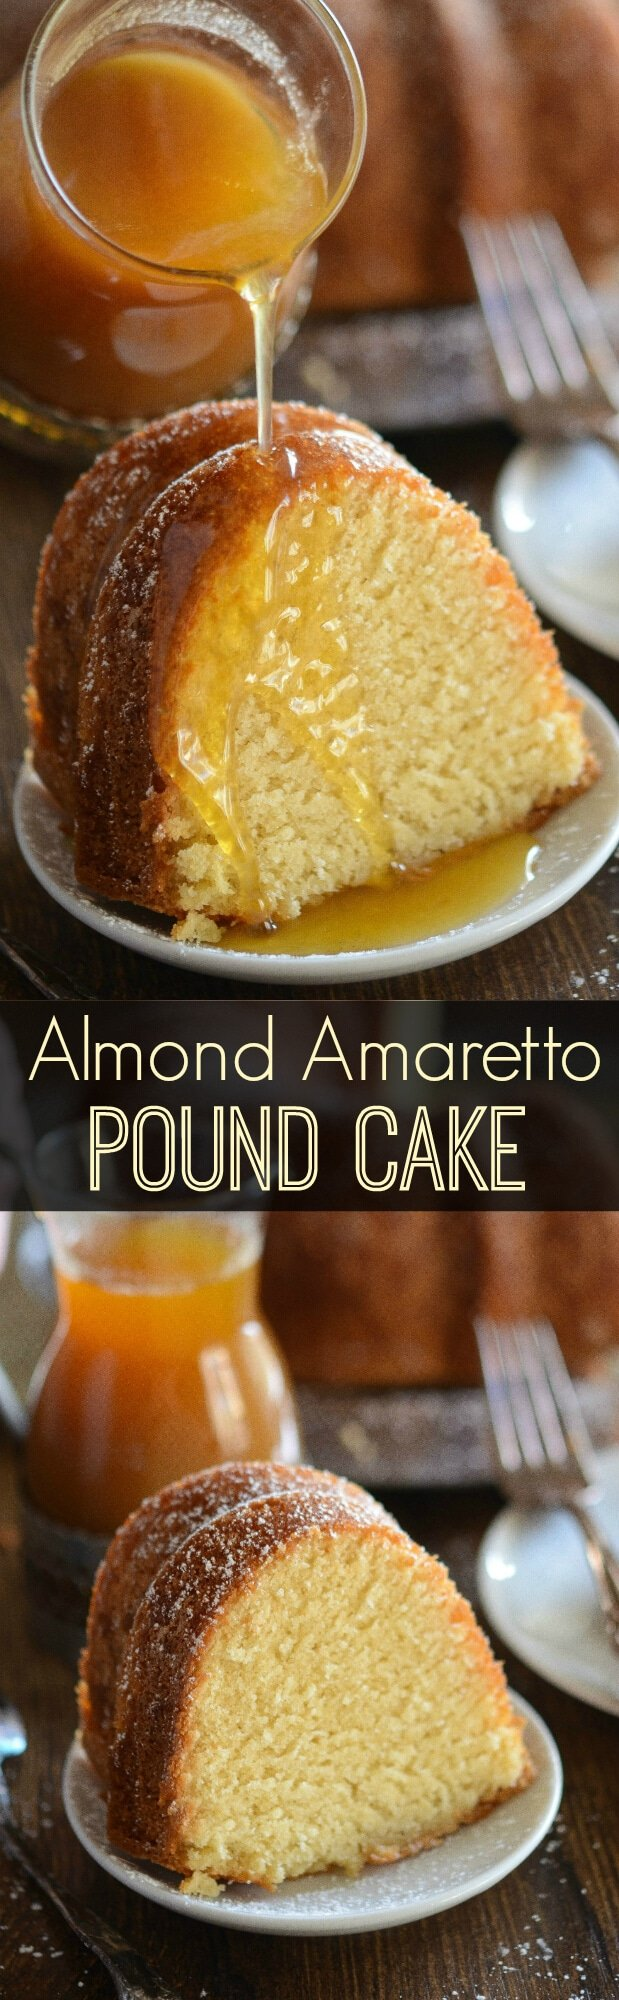 Amaretto Pound Cake With Amaretto Sauce